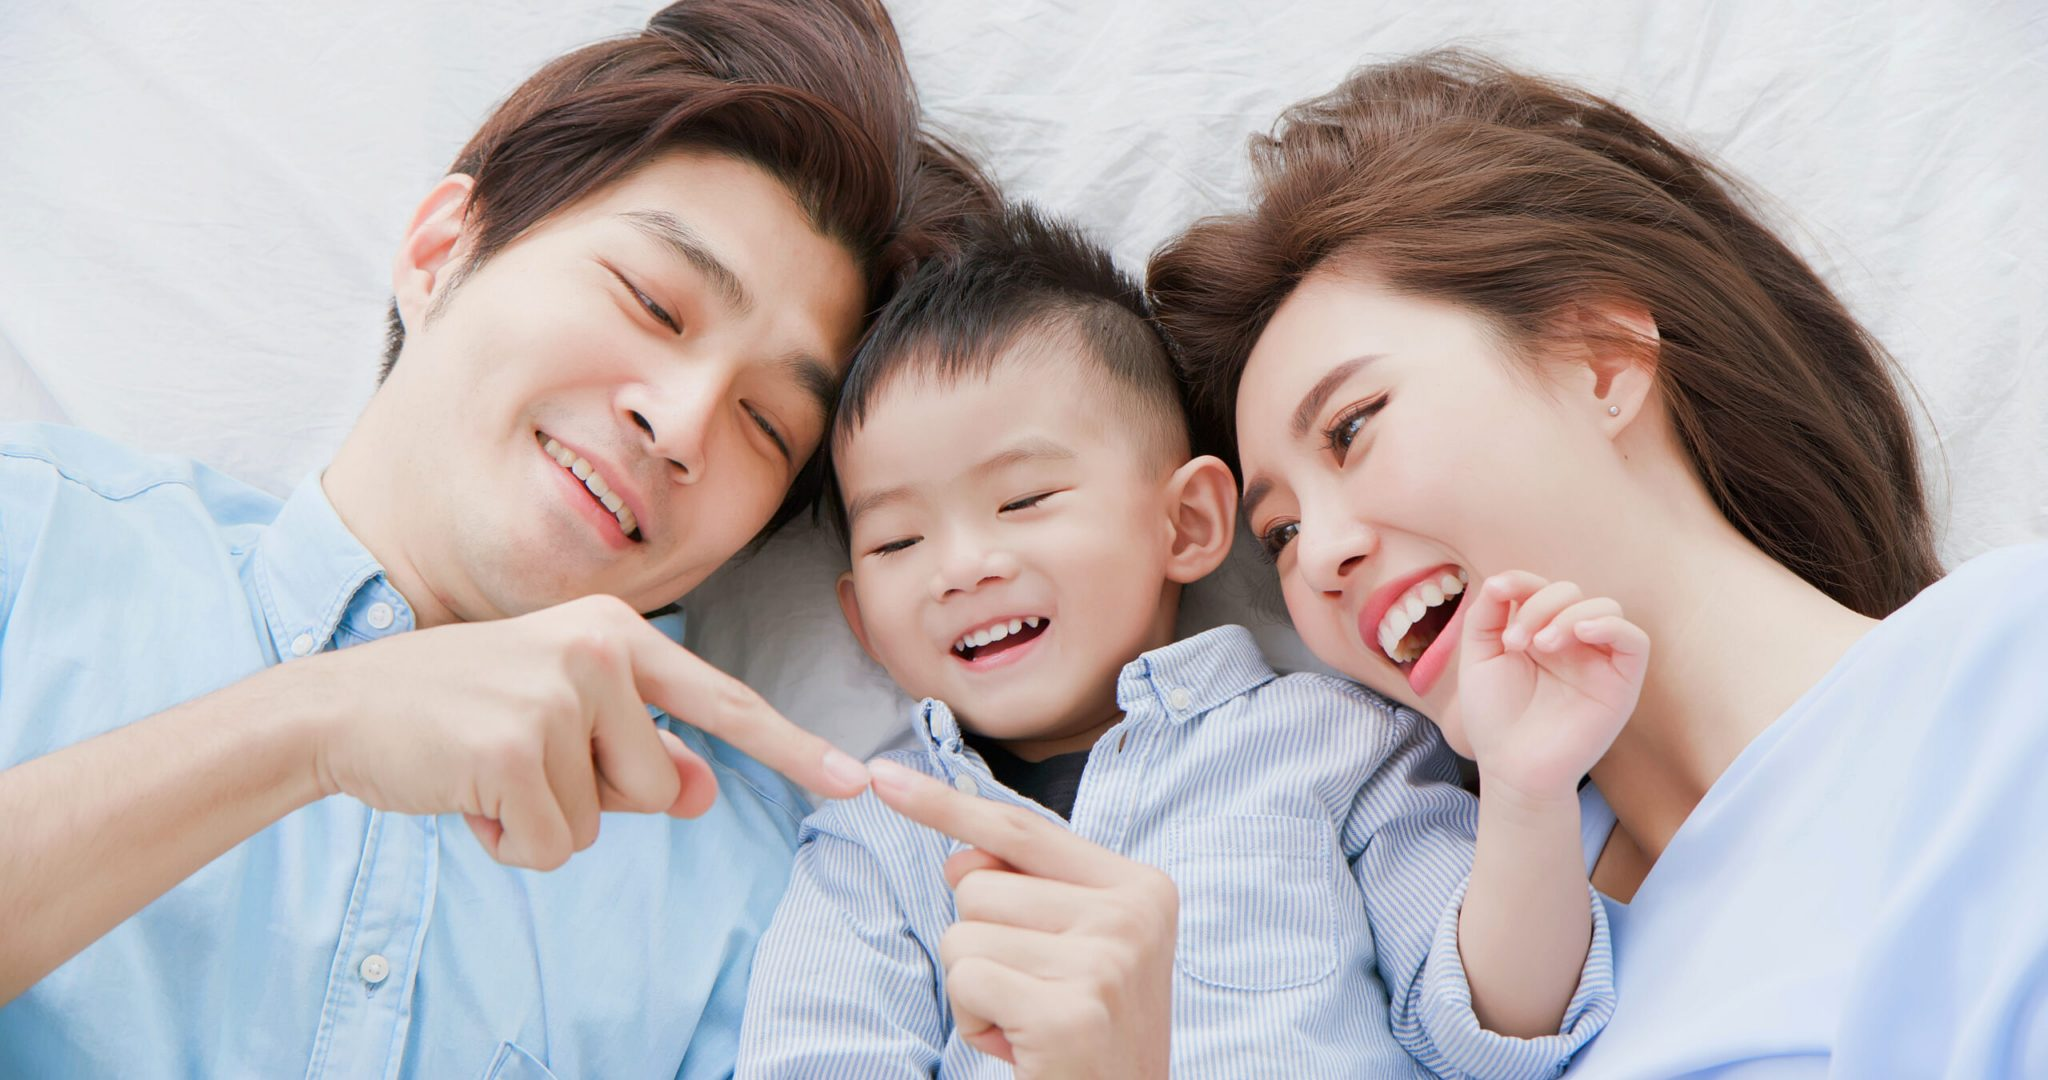 Surrogacy Cost in China: What Are the Options?